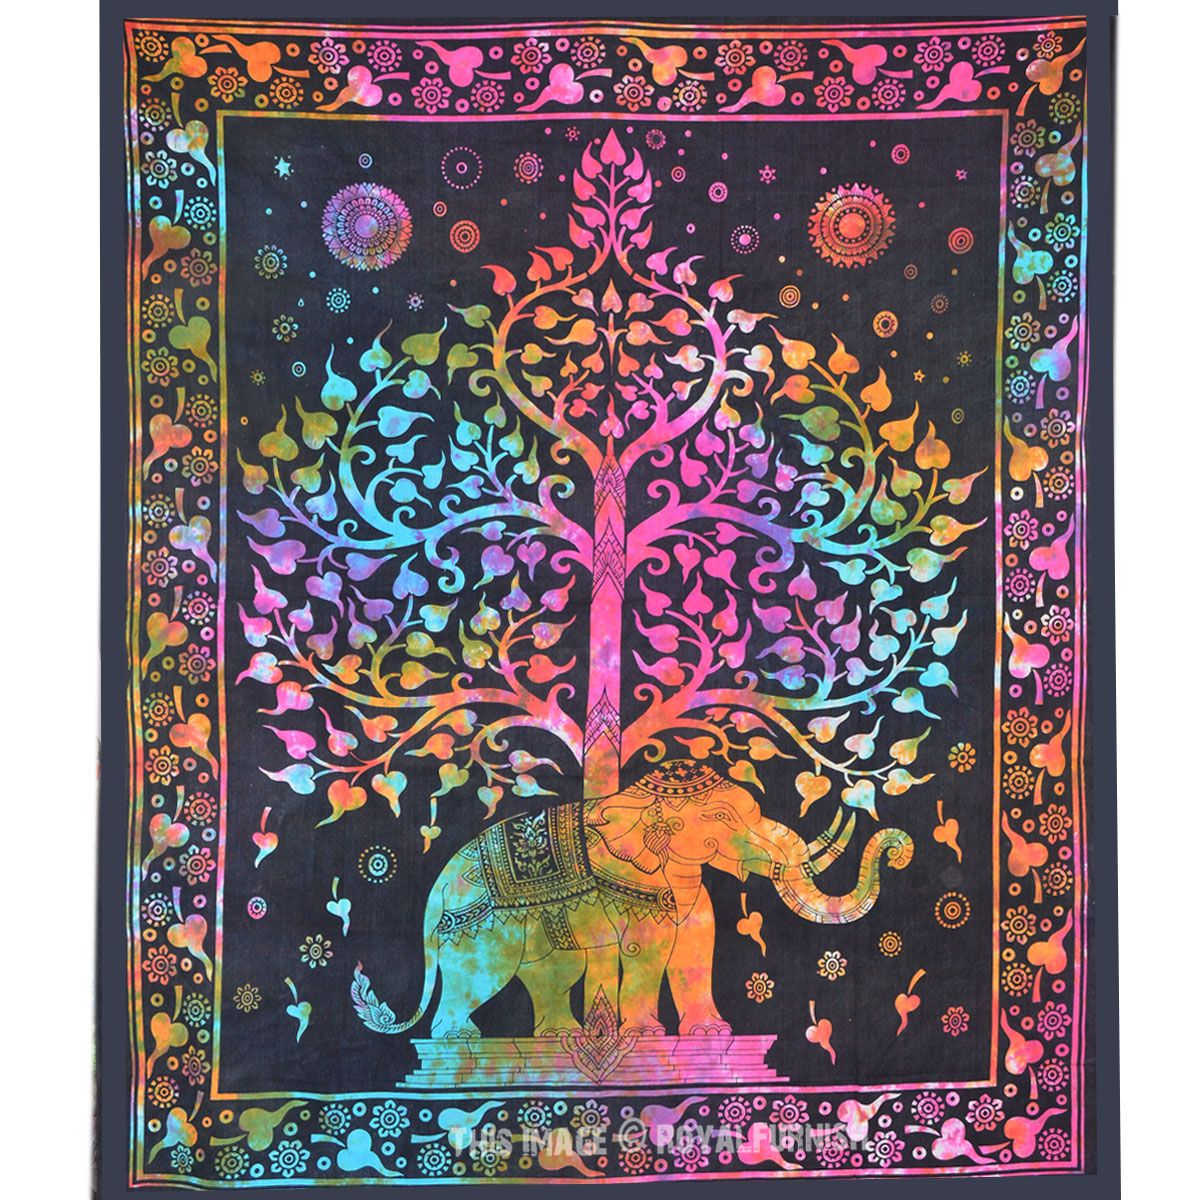 Elephant Wall Hanging multicolor tie dye colorful elephant tree tapestry wall hanging